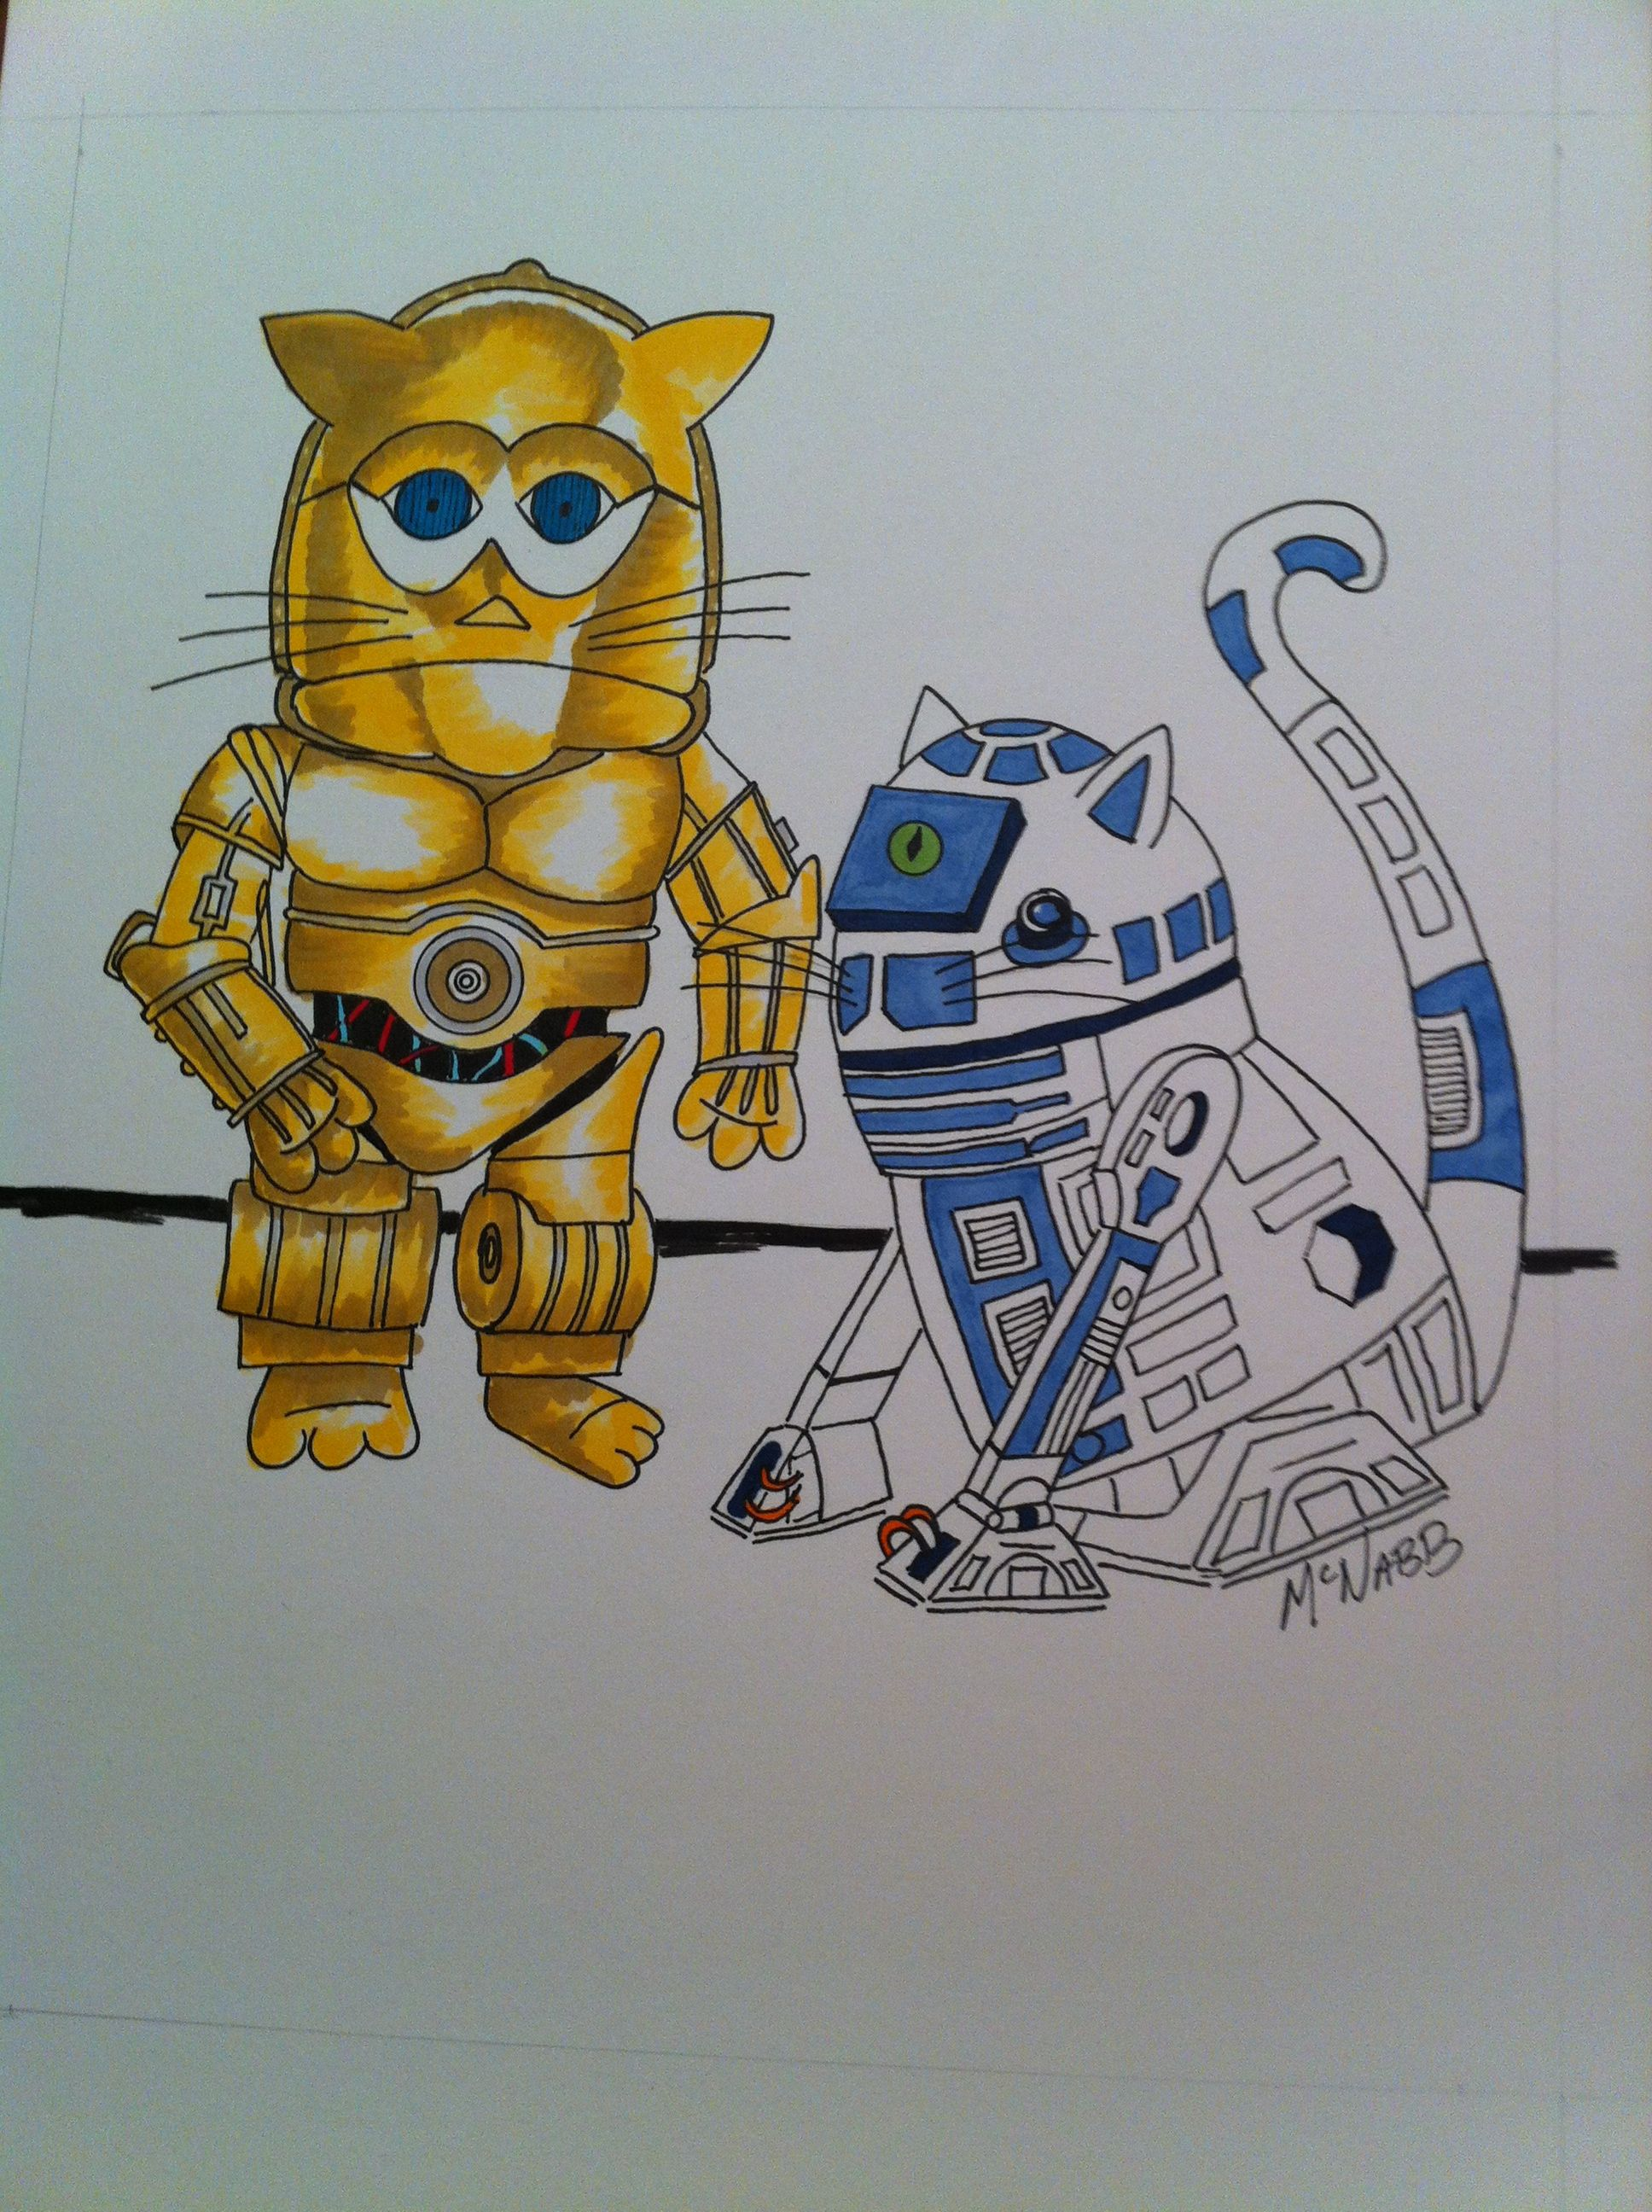 Star Wars Cats #2. C3po And R2d2. Silly Whimsical